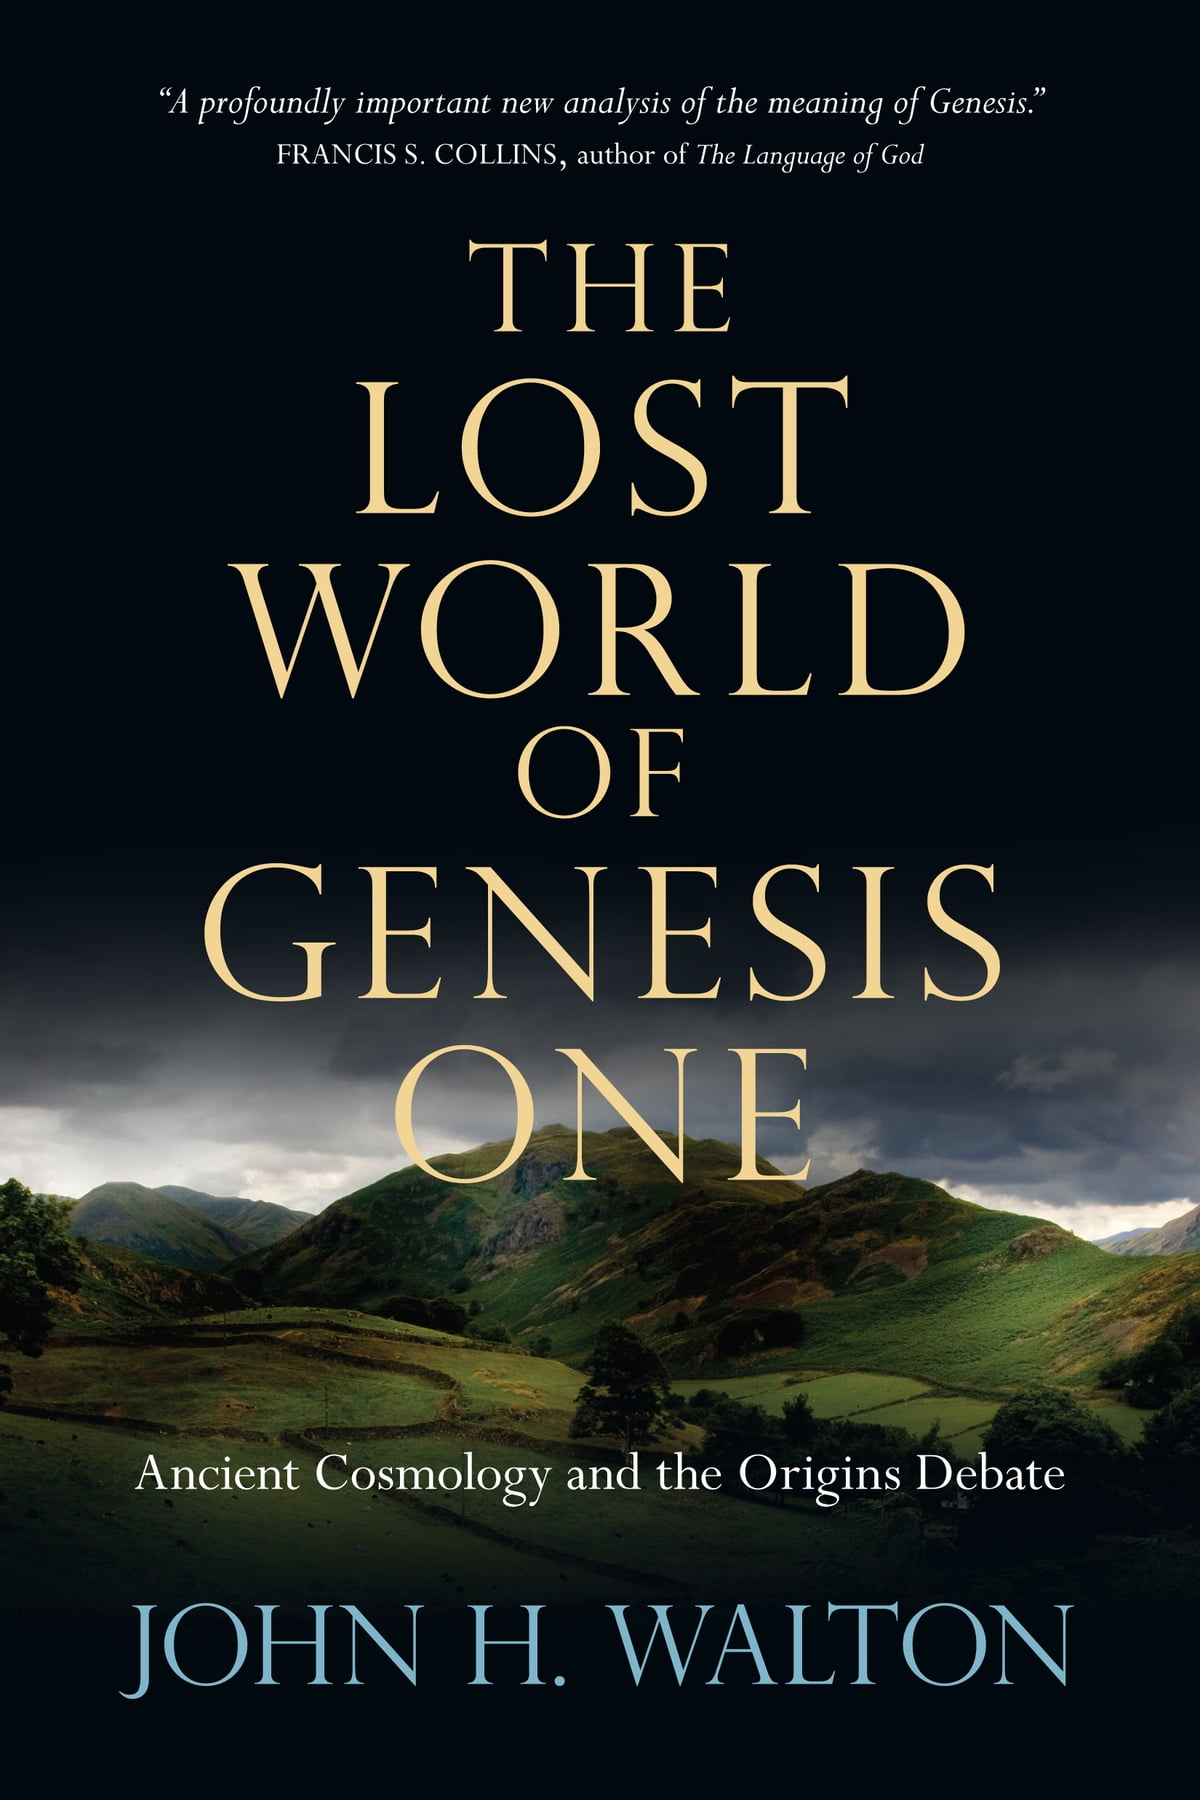 Ancient Cosmology and the Origins Debate - John H. Walton